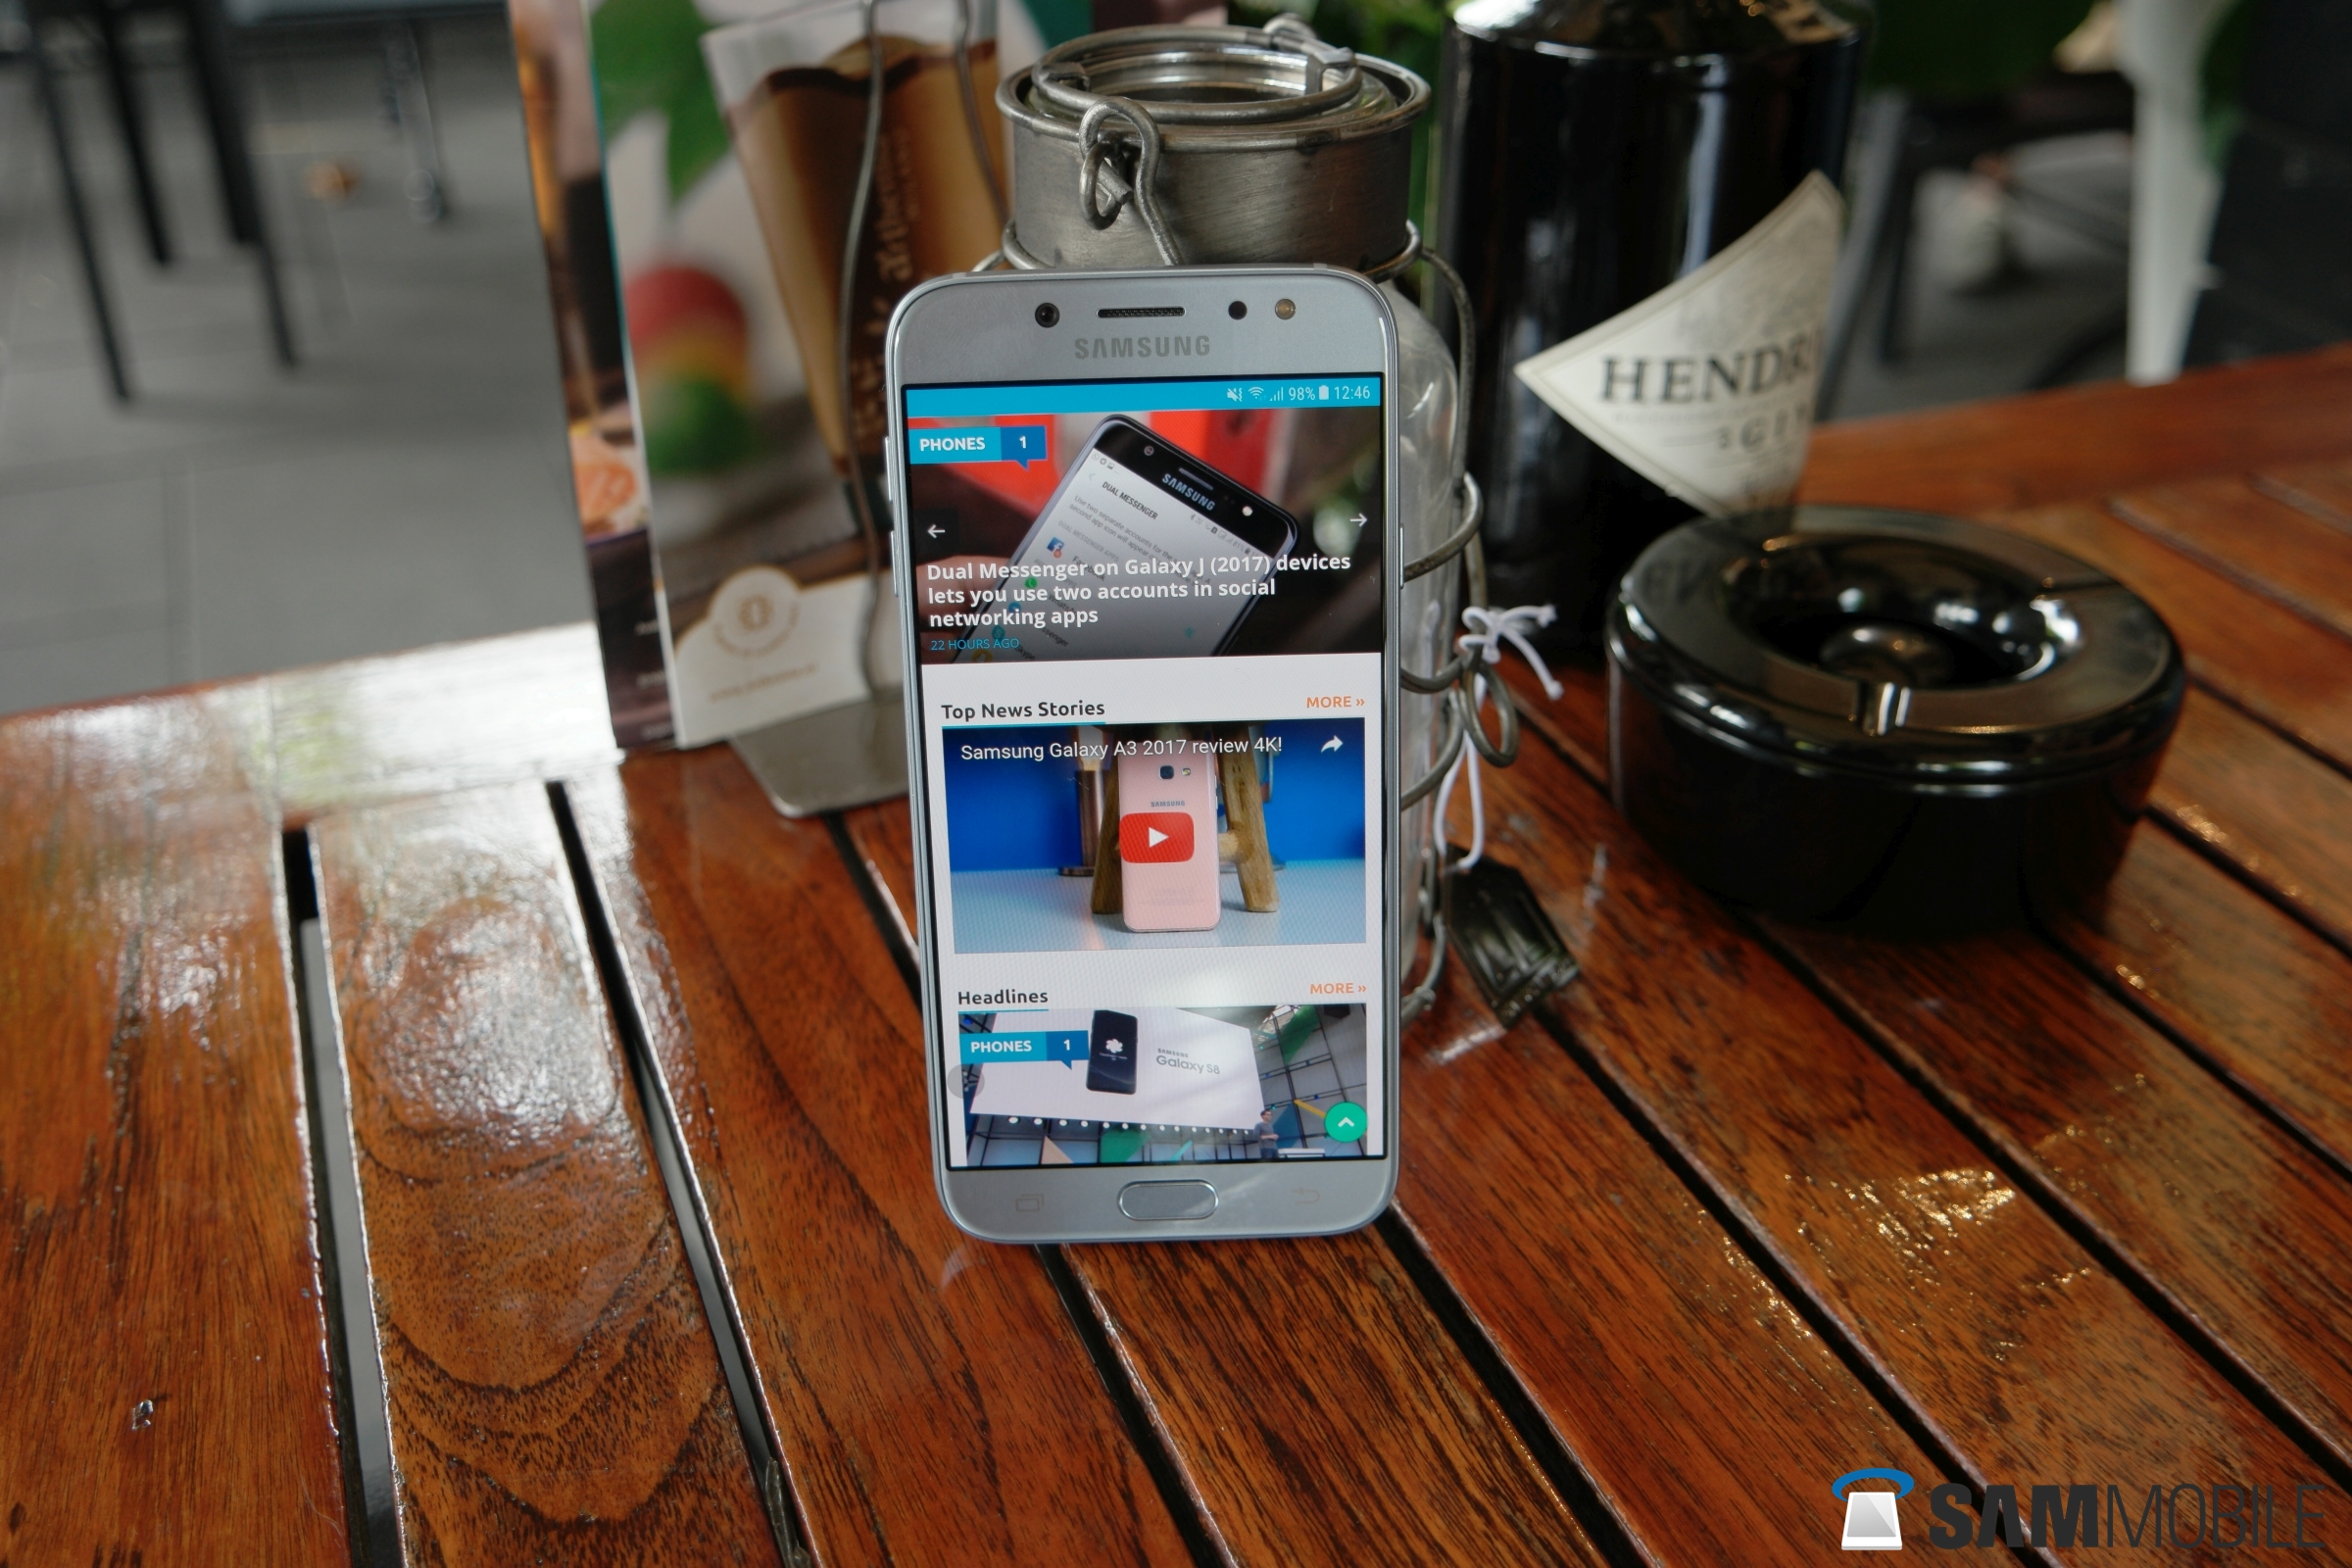 Galaxy J7 (2017) review: A beautiful phone with substandard